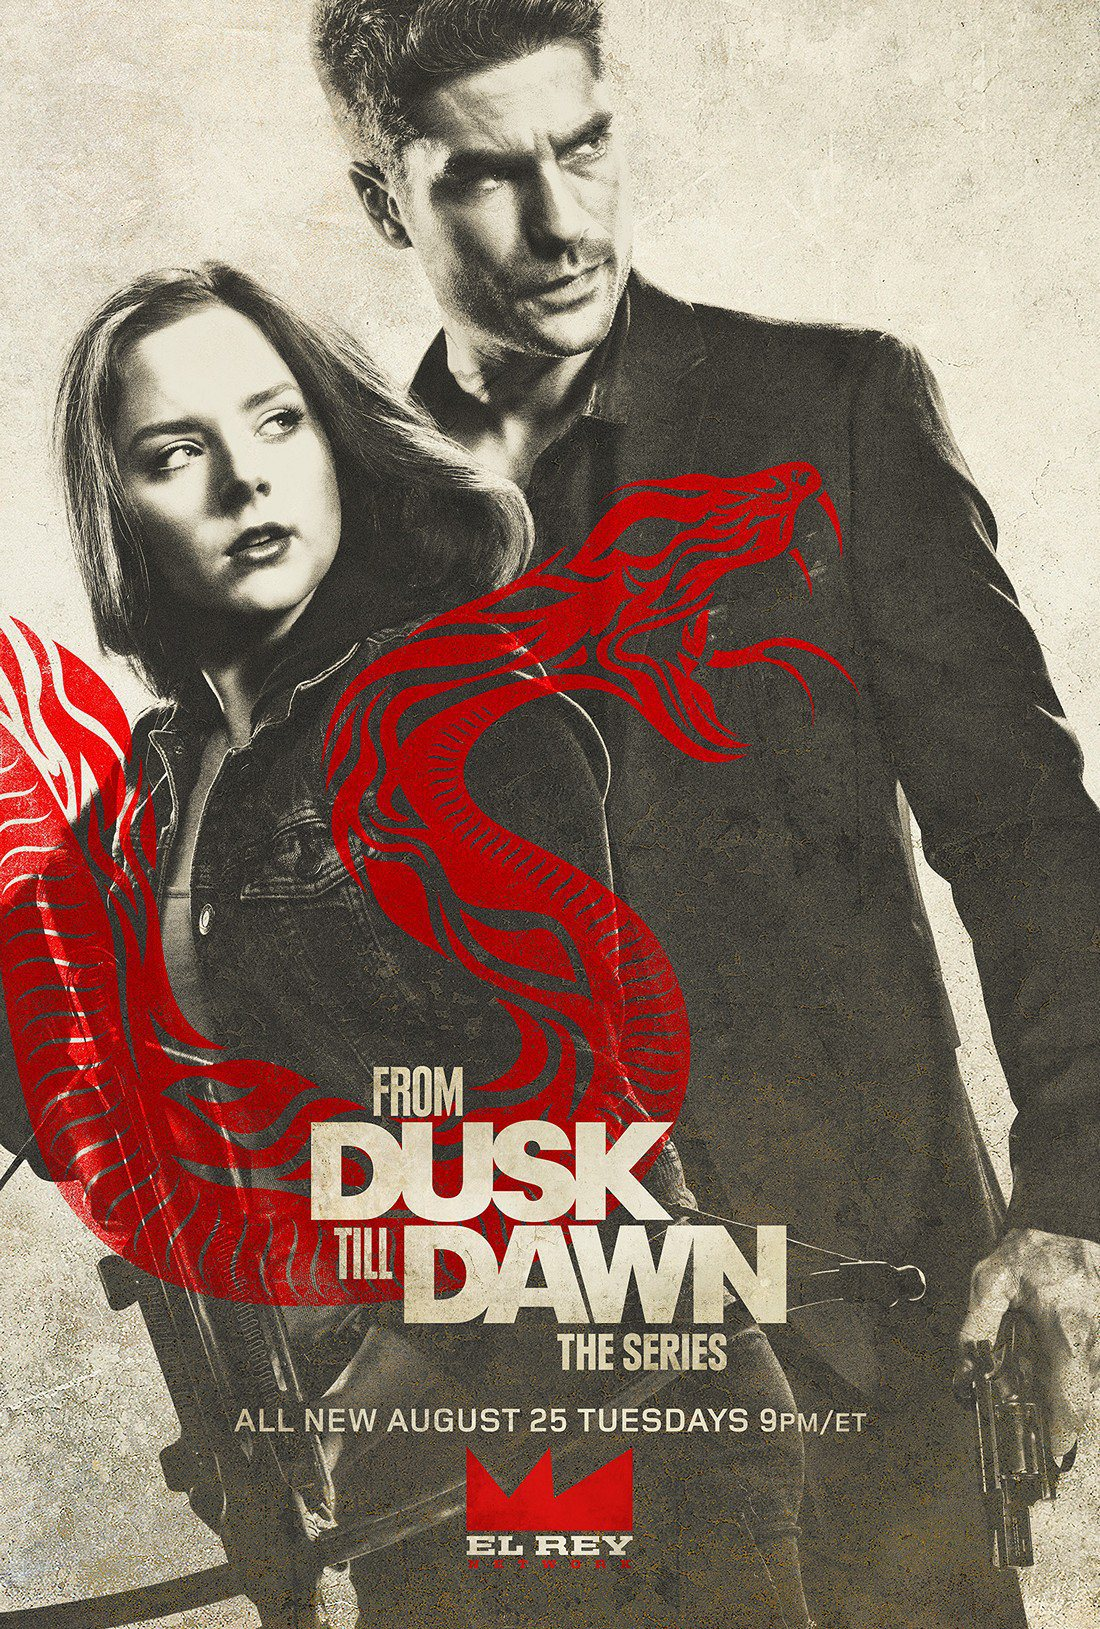 Fdtd The Series Season 2 Posters From Dusk Till Dawn The Series